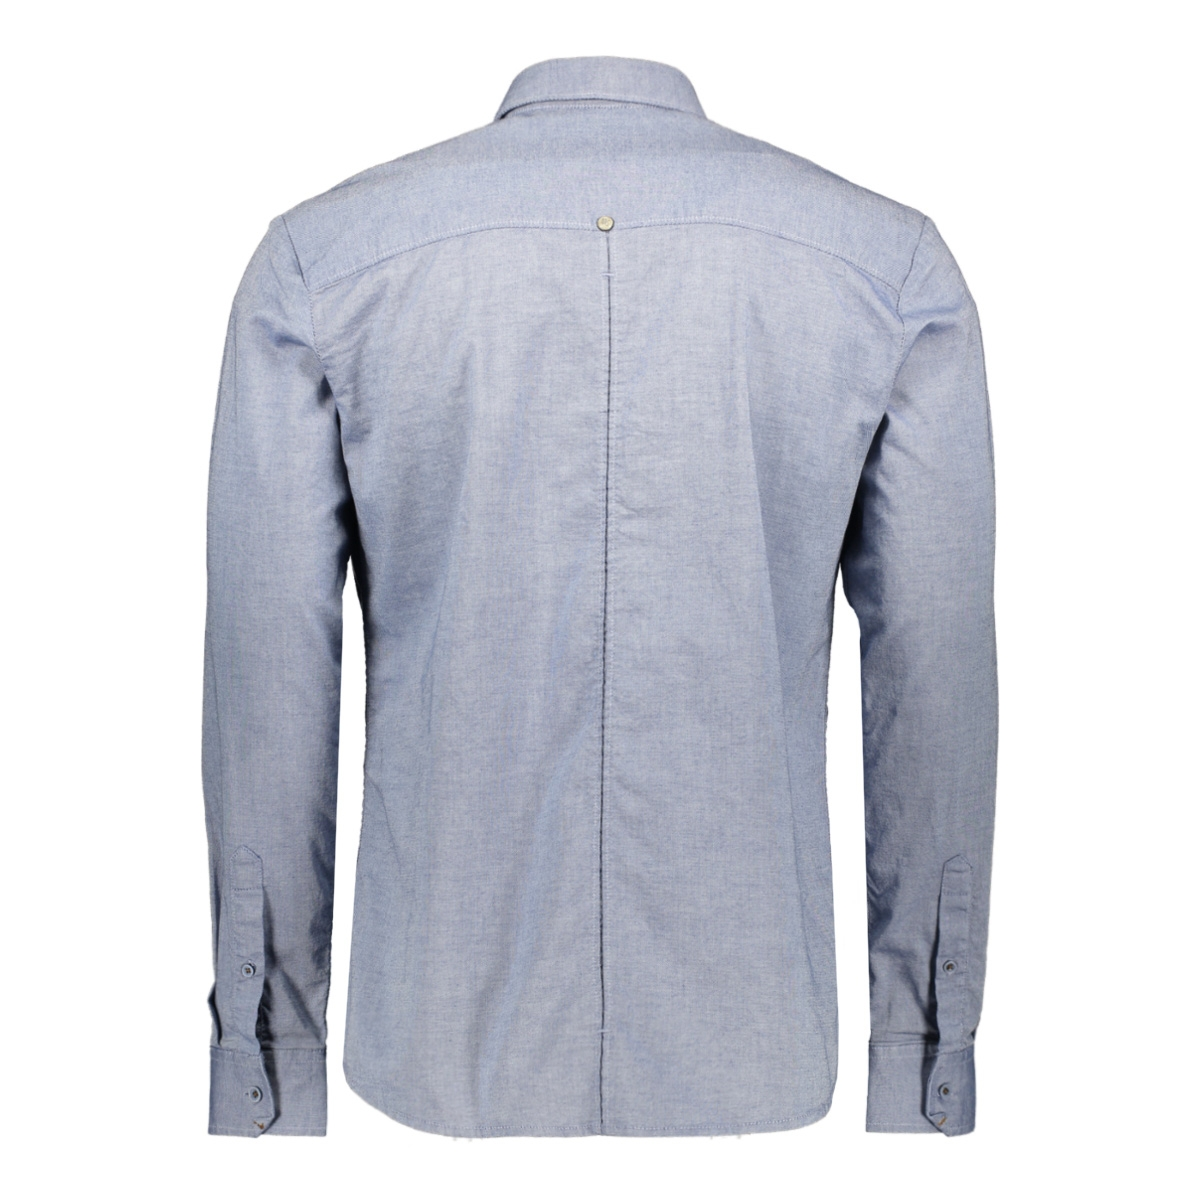 stretch shirt 90450205 no-excess overhemd 136 indigo blue